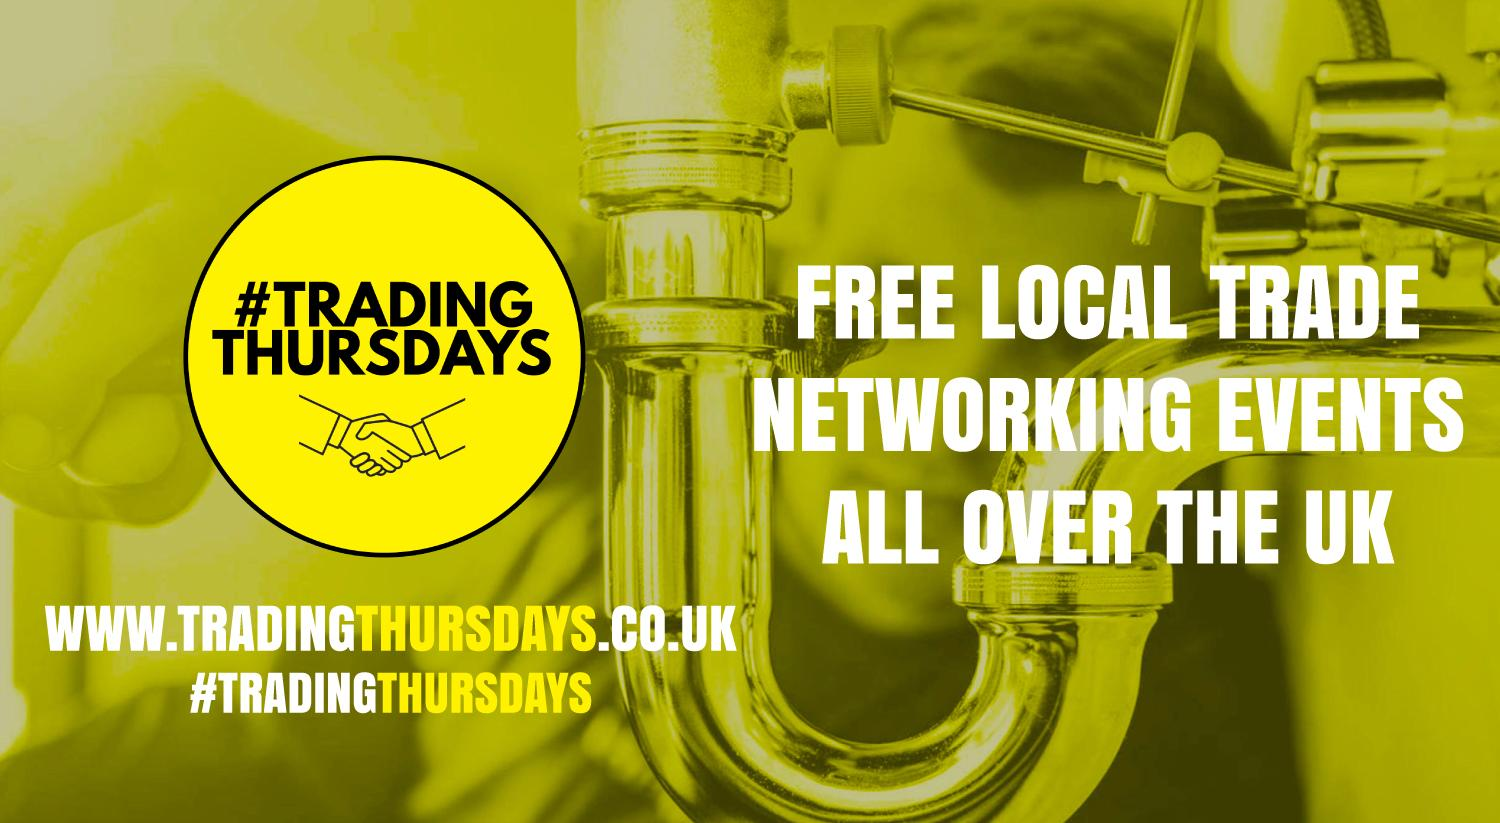 Trading Thursdays! Free networking event for traders in Edinburgh